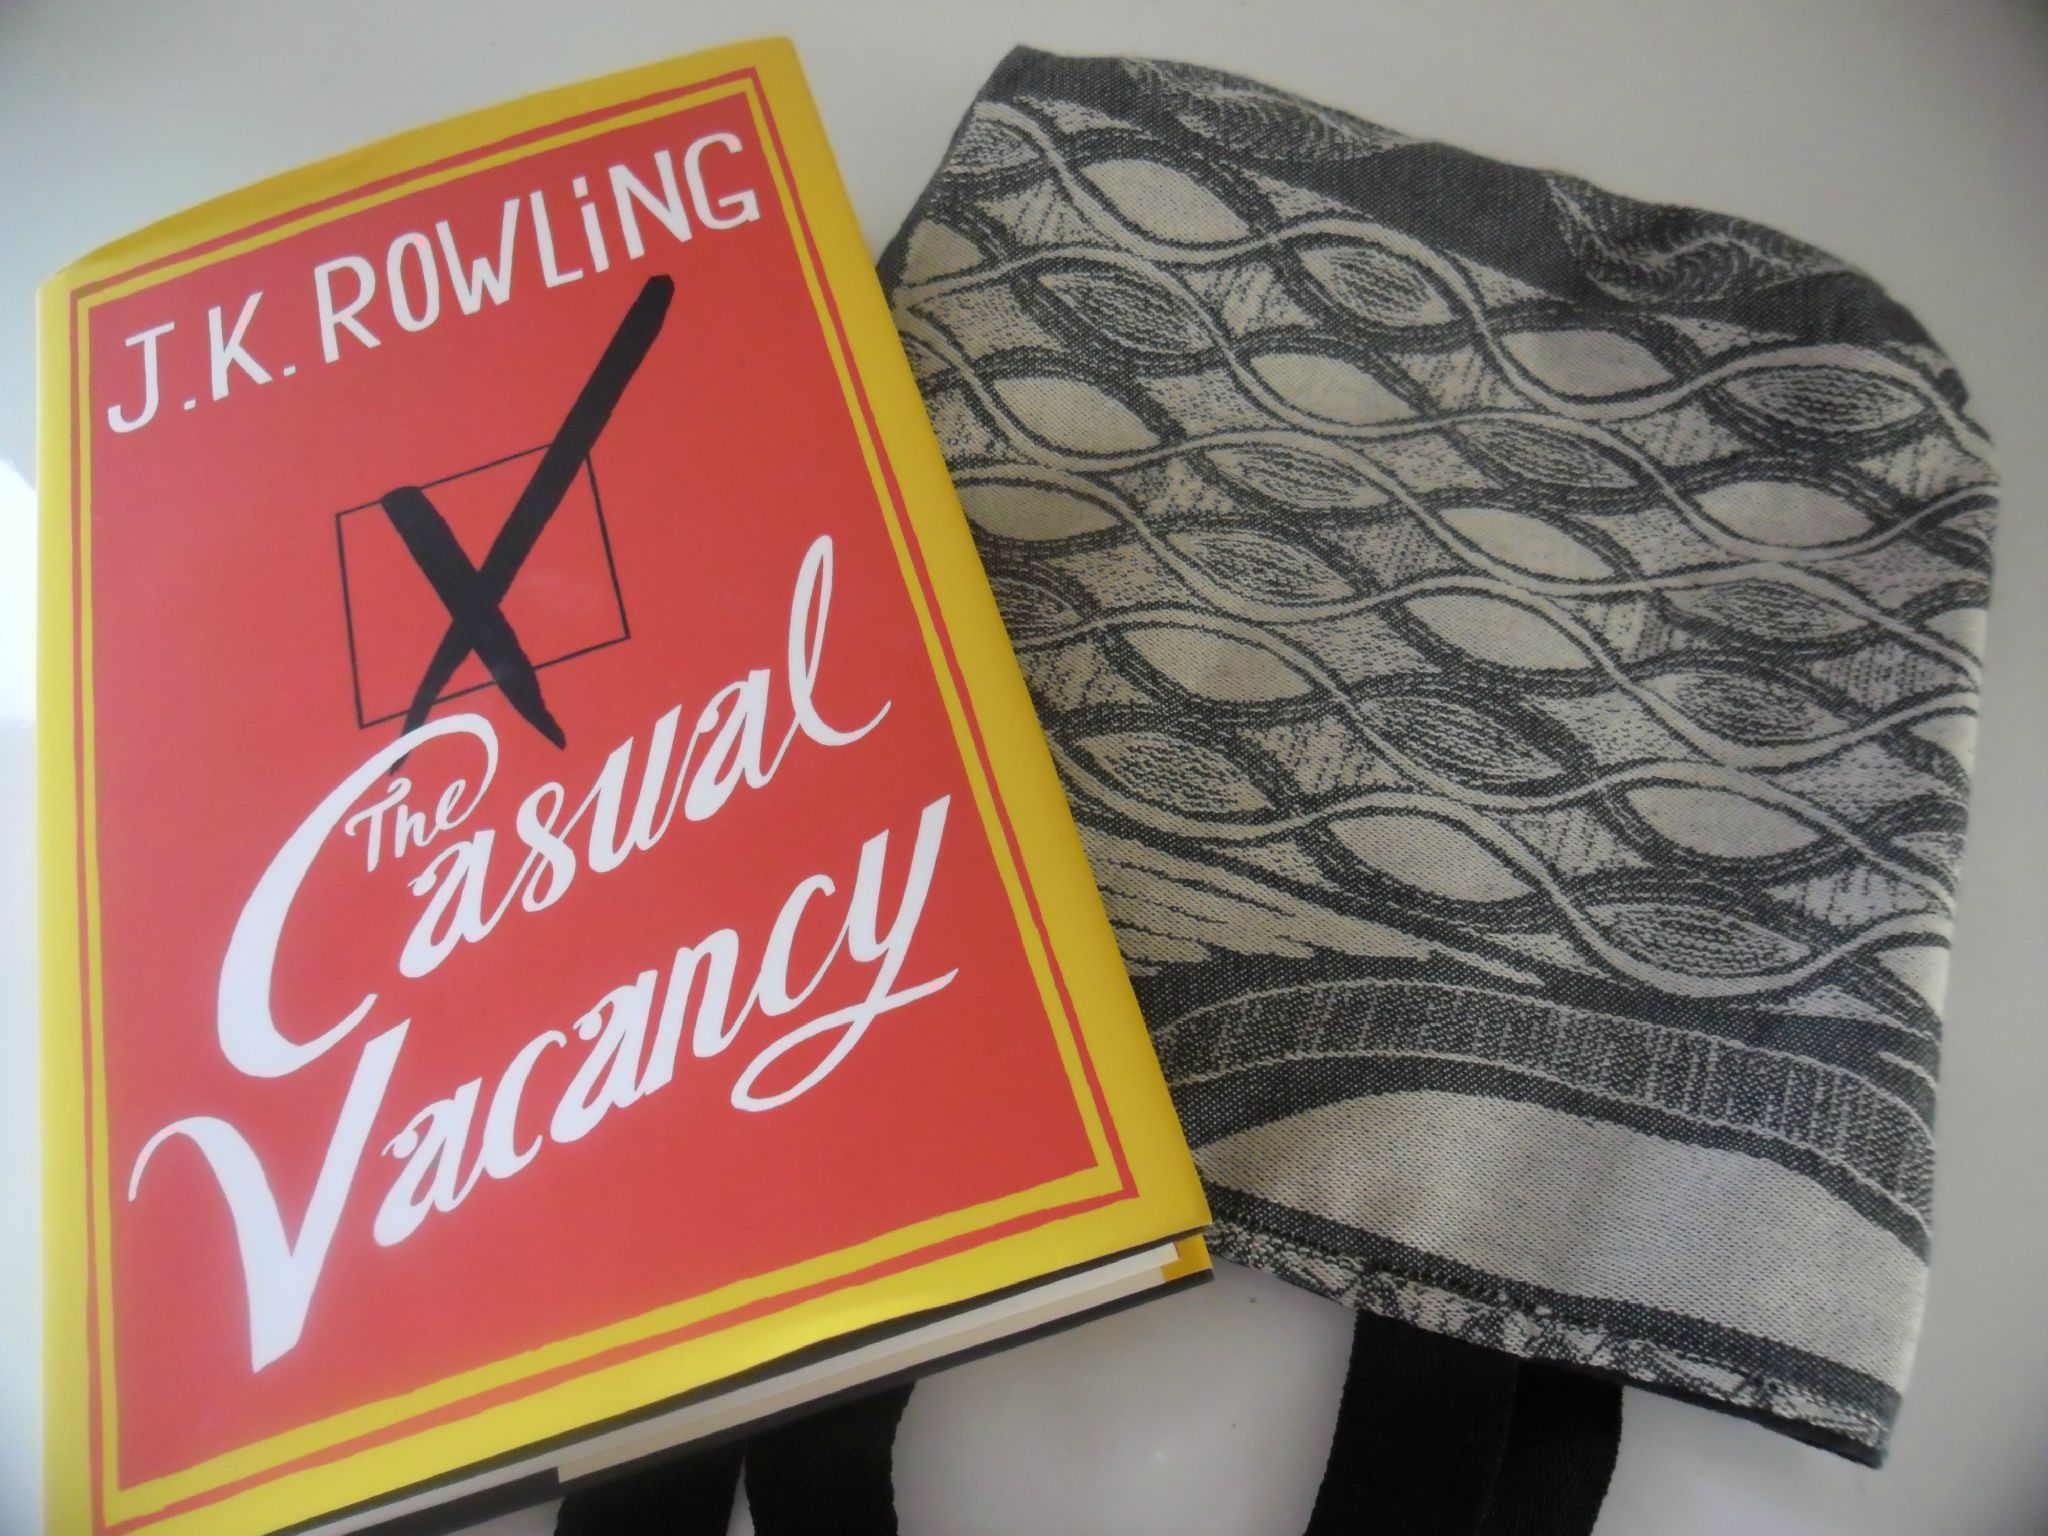 Casual Vacancy -JK Rowling